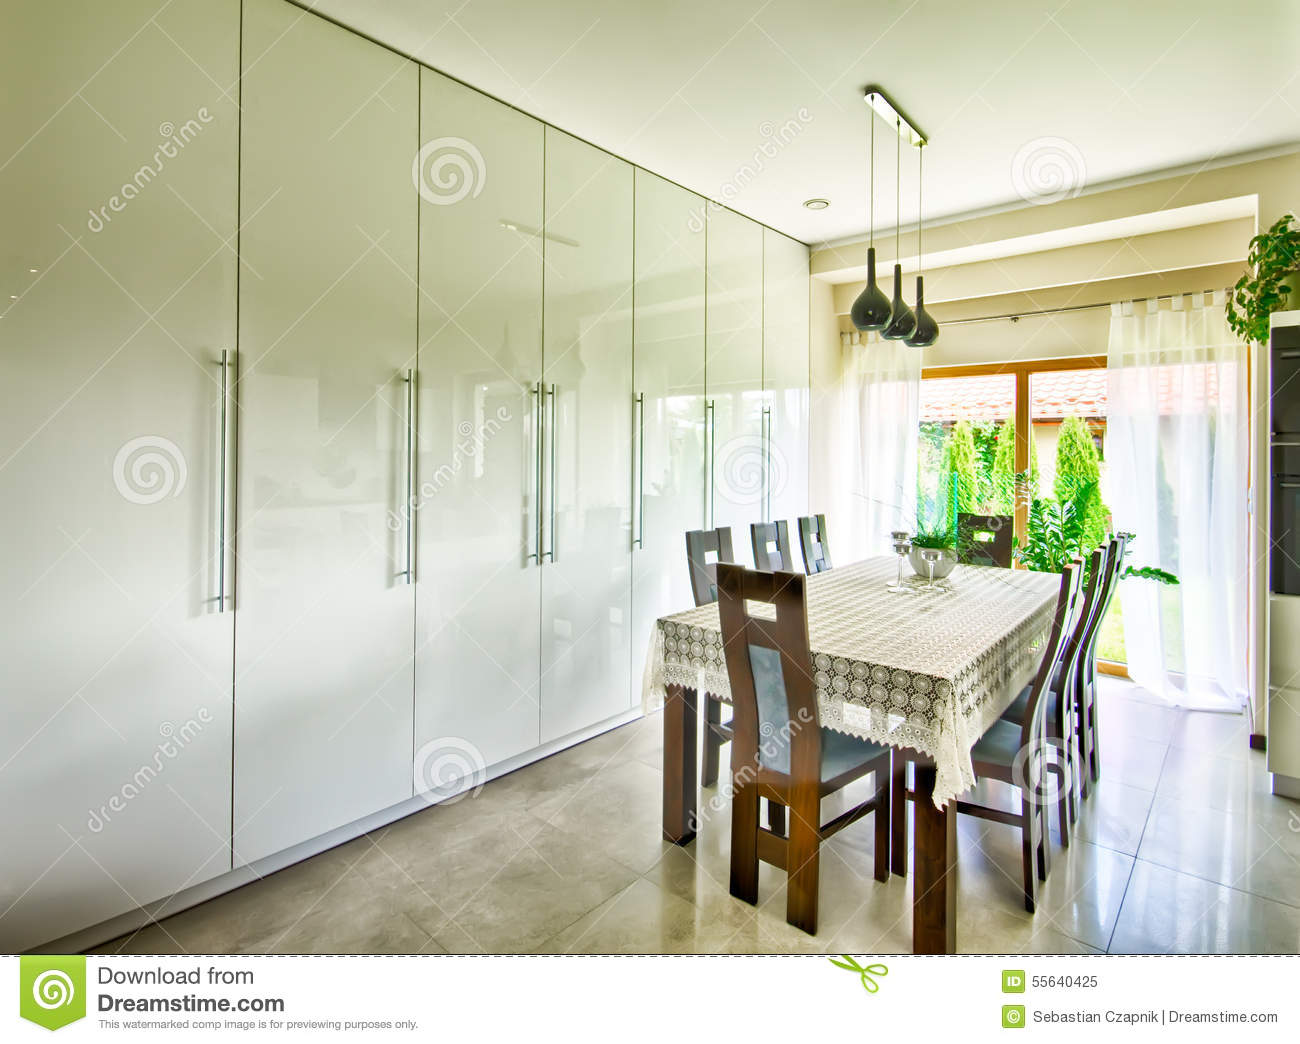 modern dining room cabinets | Interior Of Modern Dining Room Stock Image - Image of room ...